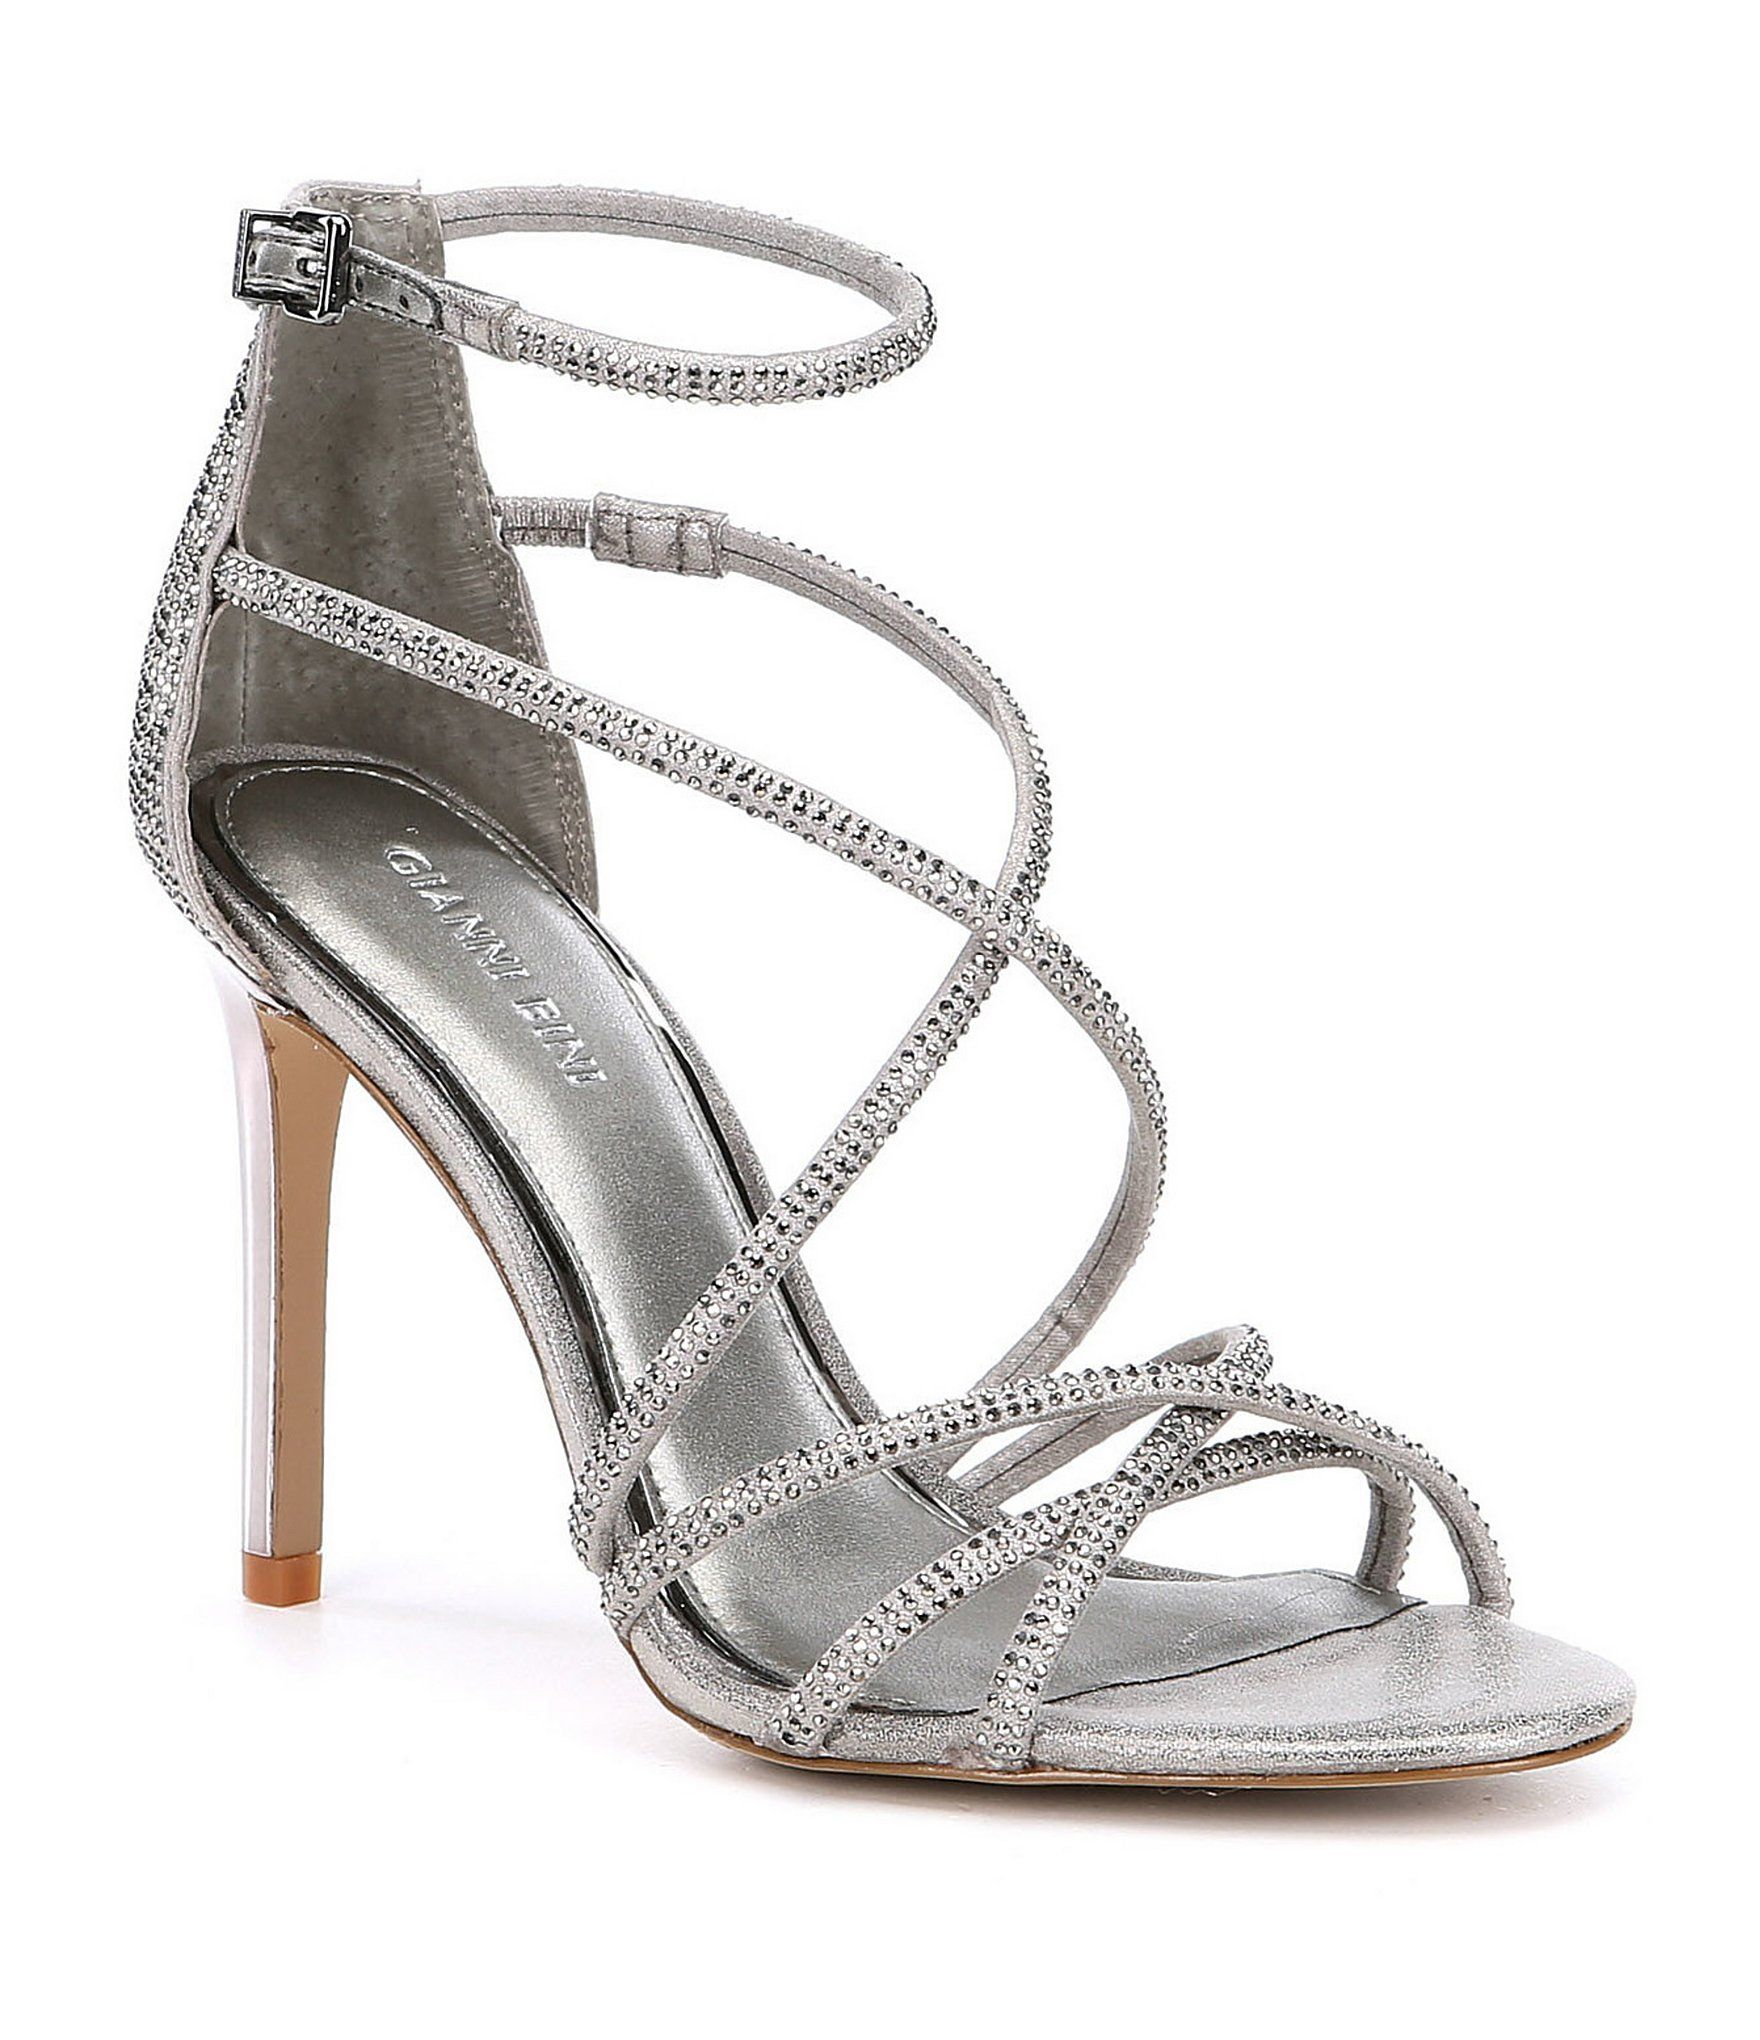 c3b682bc6a4 Gianni Bini Anselle Jeweled Strappy Dress Sandals in 2019 | Shoes ...